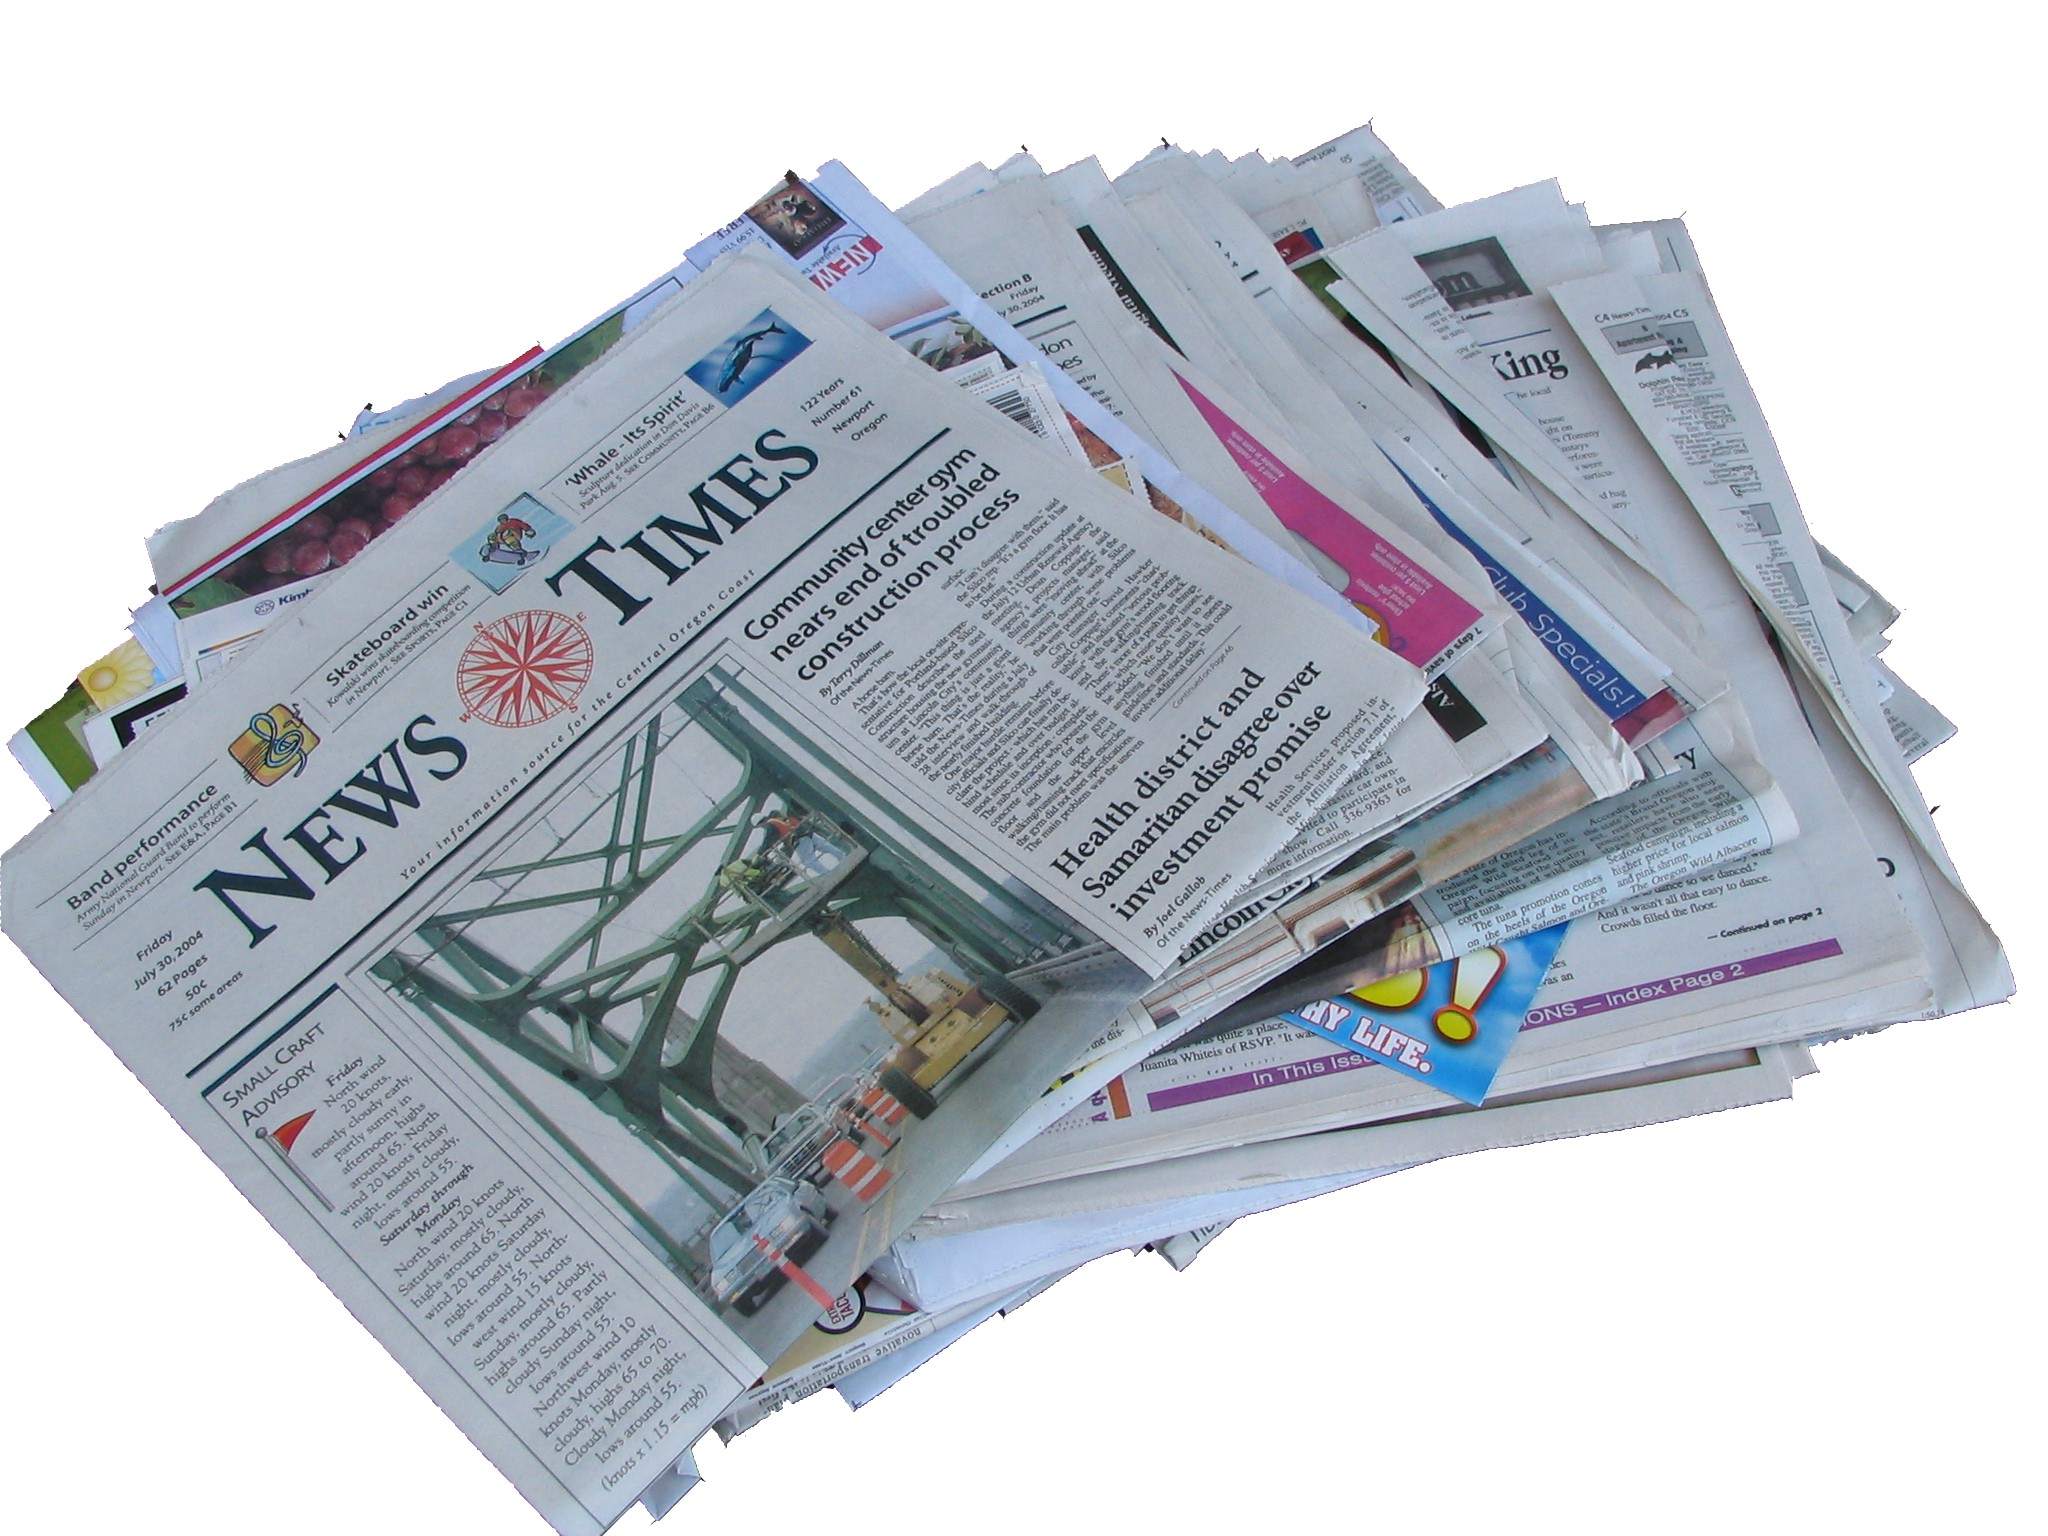 external image newspaper.jpg